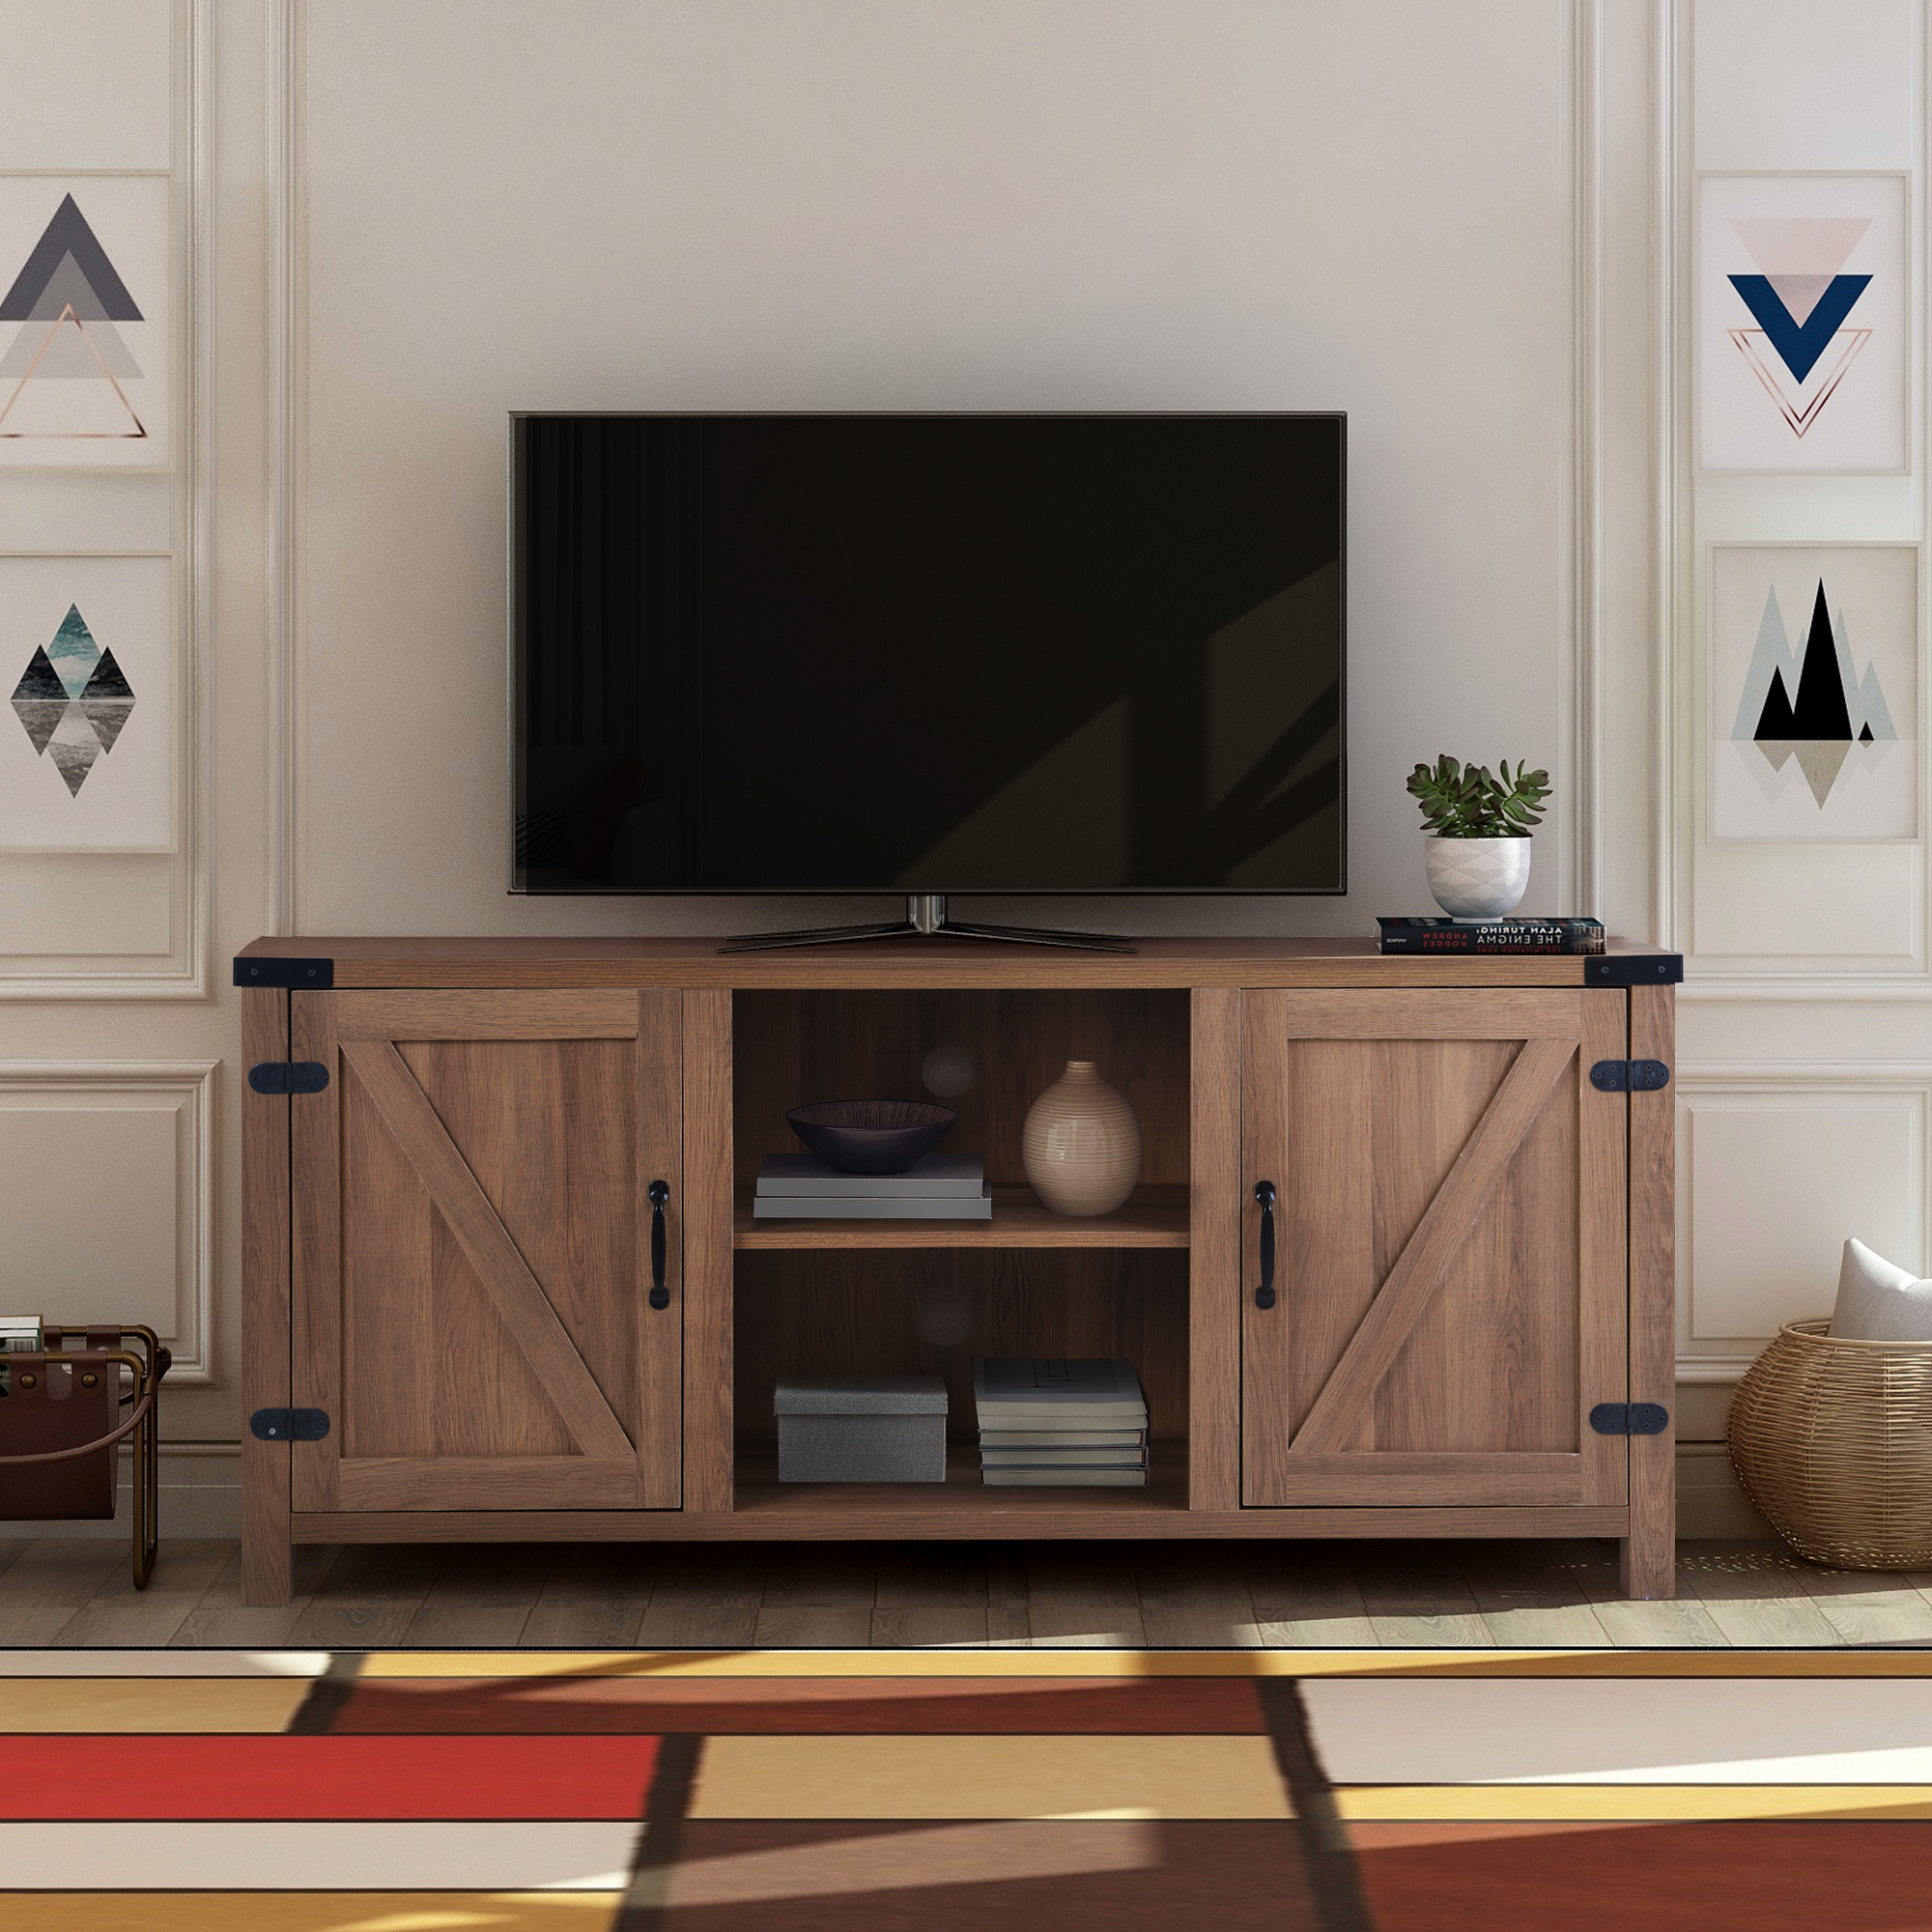 """2017 Jowers Tv Stands For Tvs Up To 65"""" With Clearance! Modern Tv Stand Cabinet, Farmhouse Tv Stand For (View 2 of 25)"""